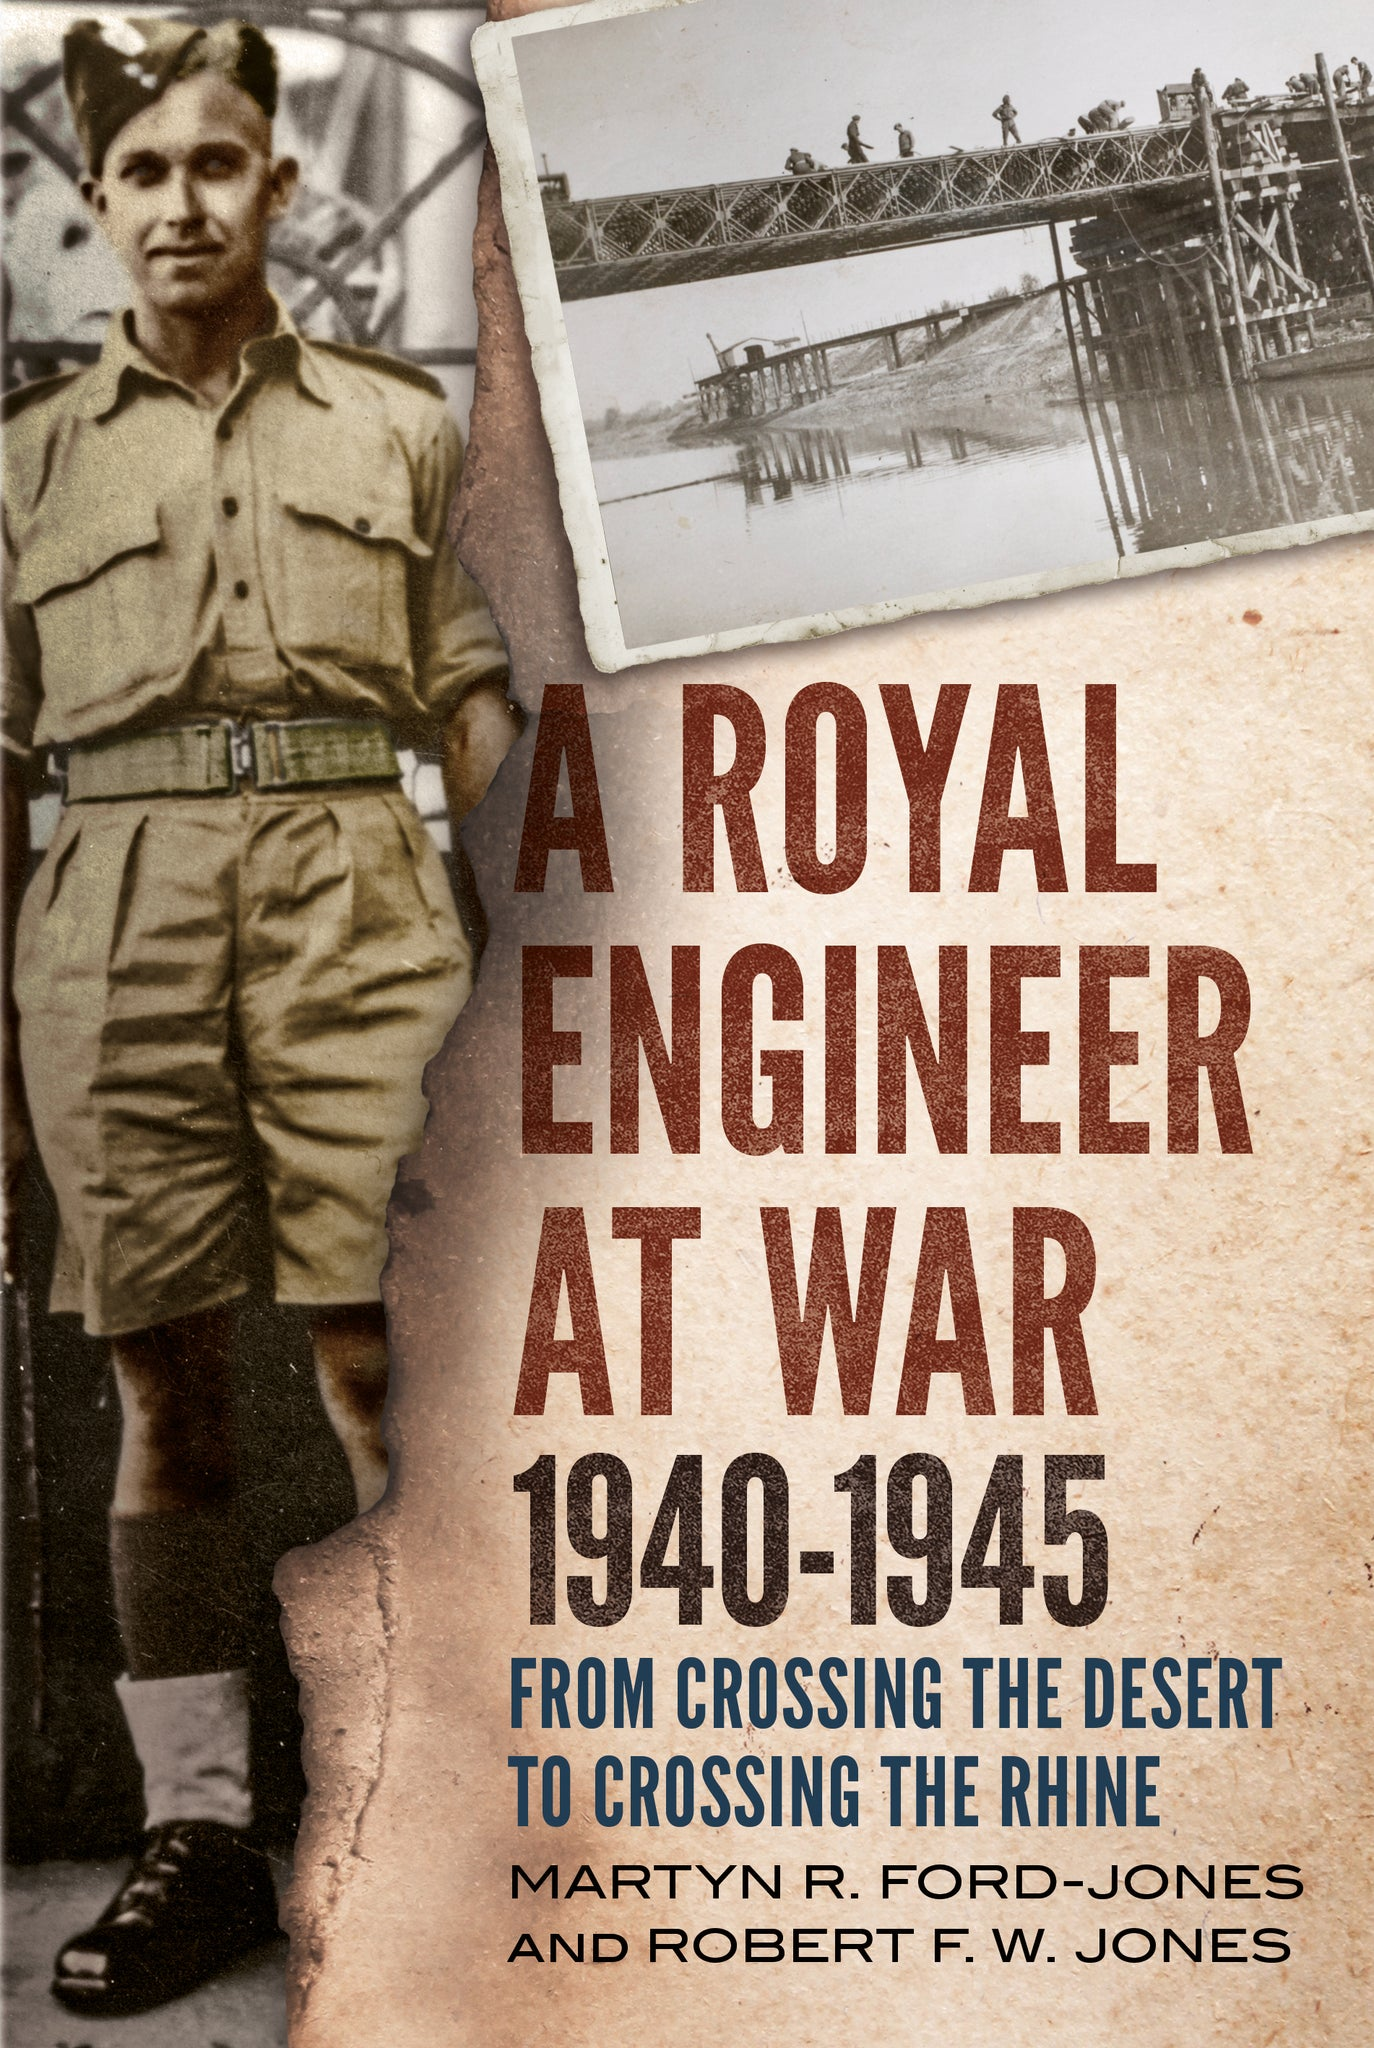 A Royal Engineer at War 1940-1945: From Crossing the Desert to Crossing the Rhine - published by Fonthill Media